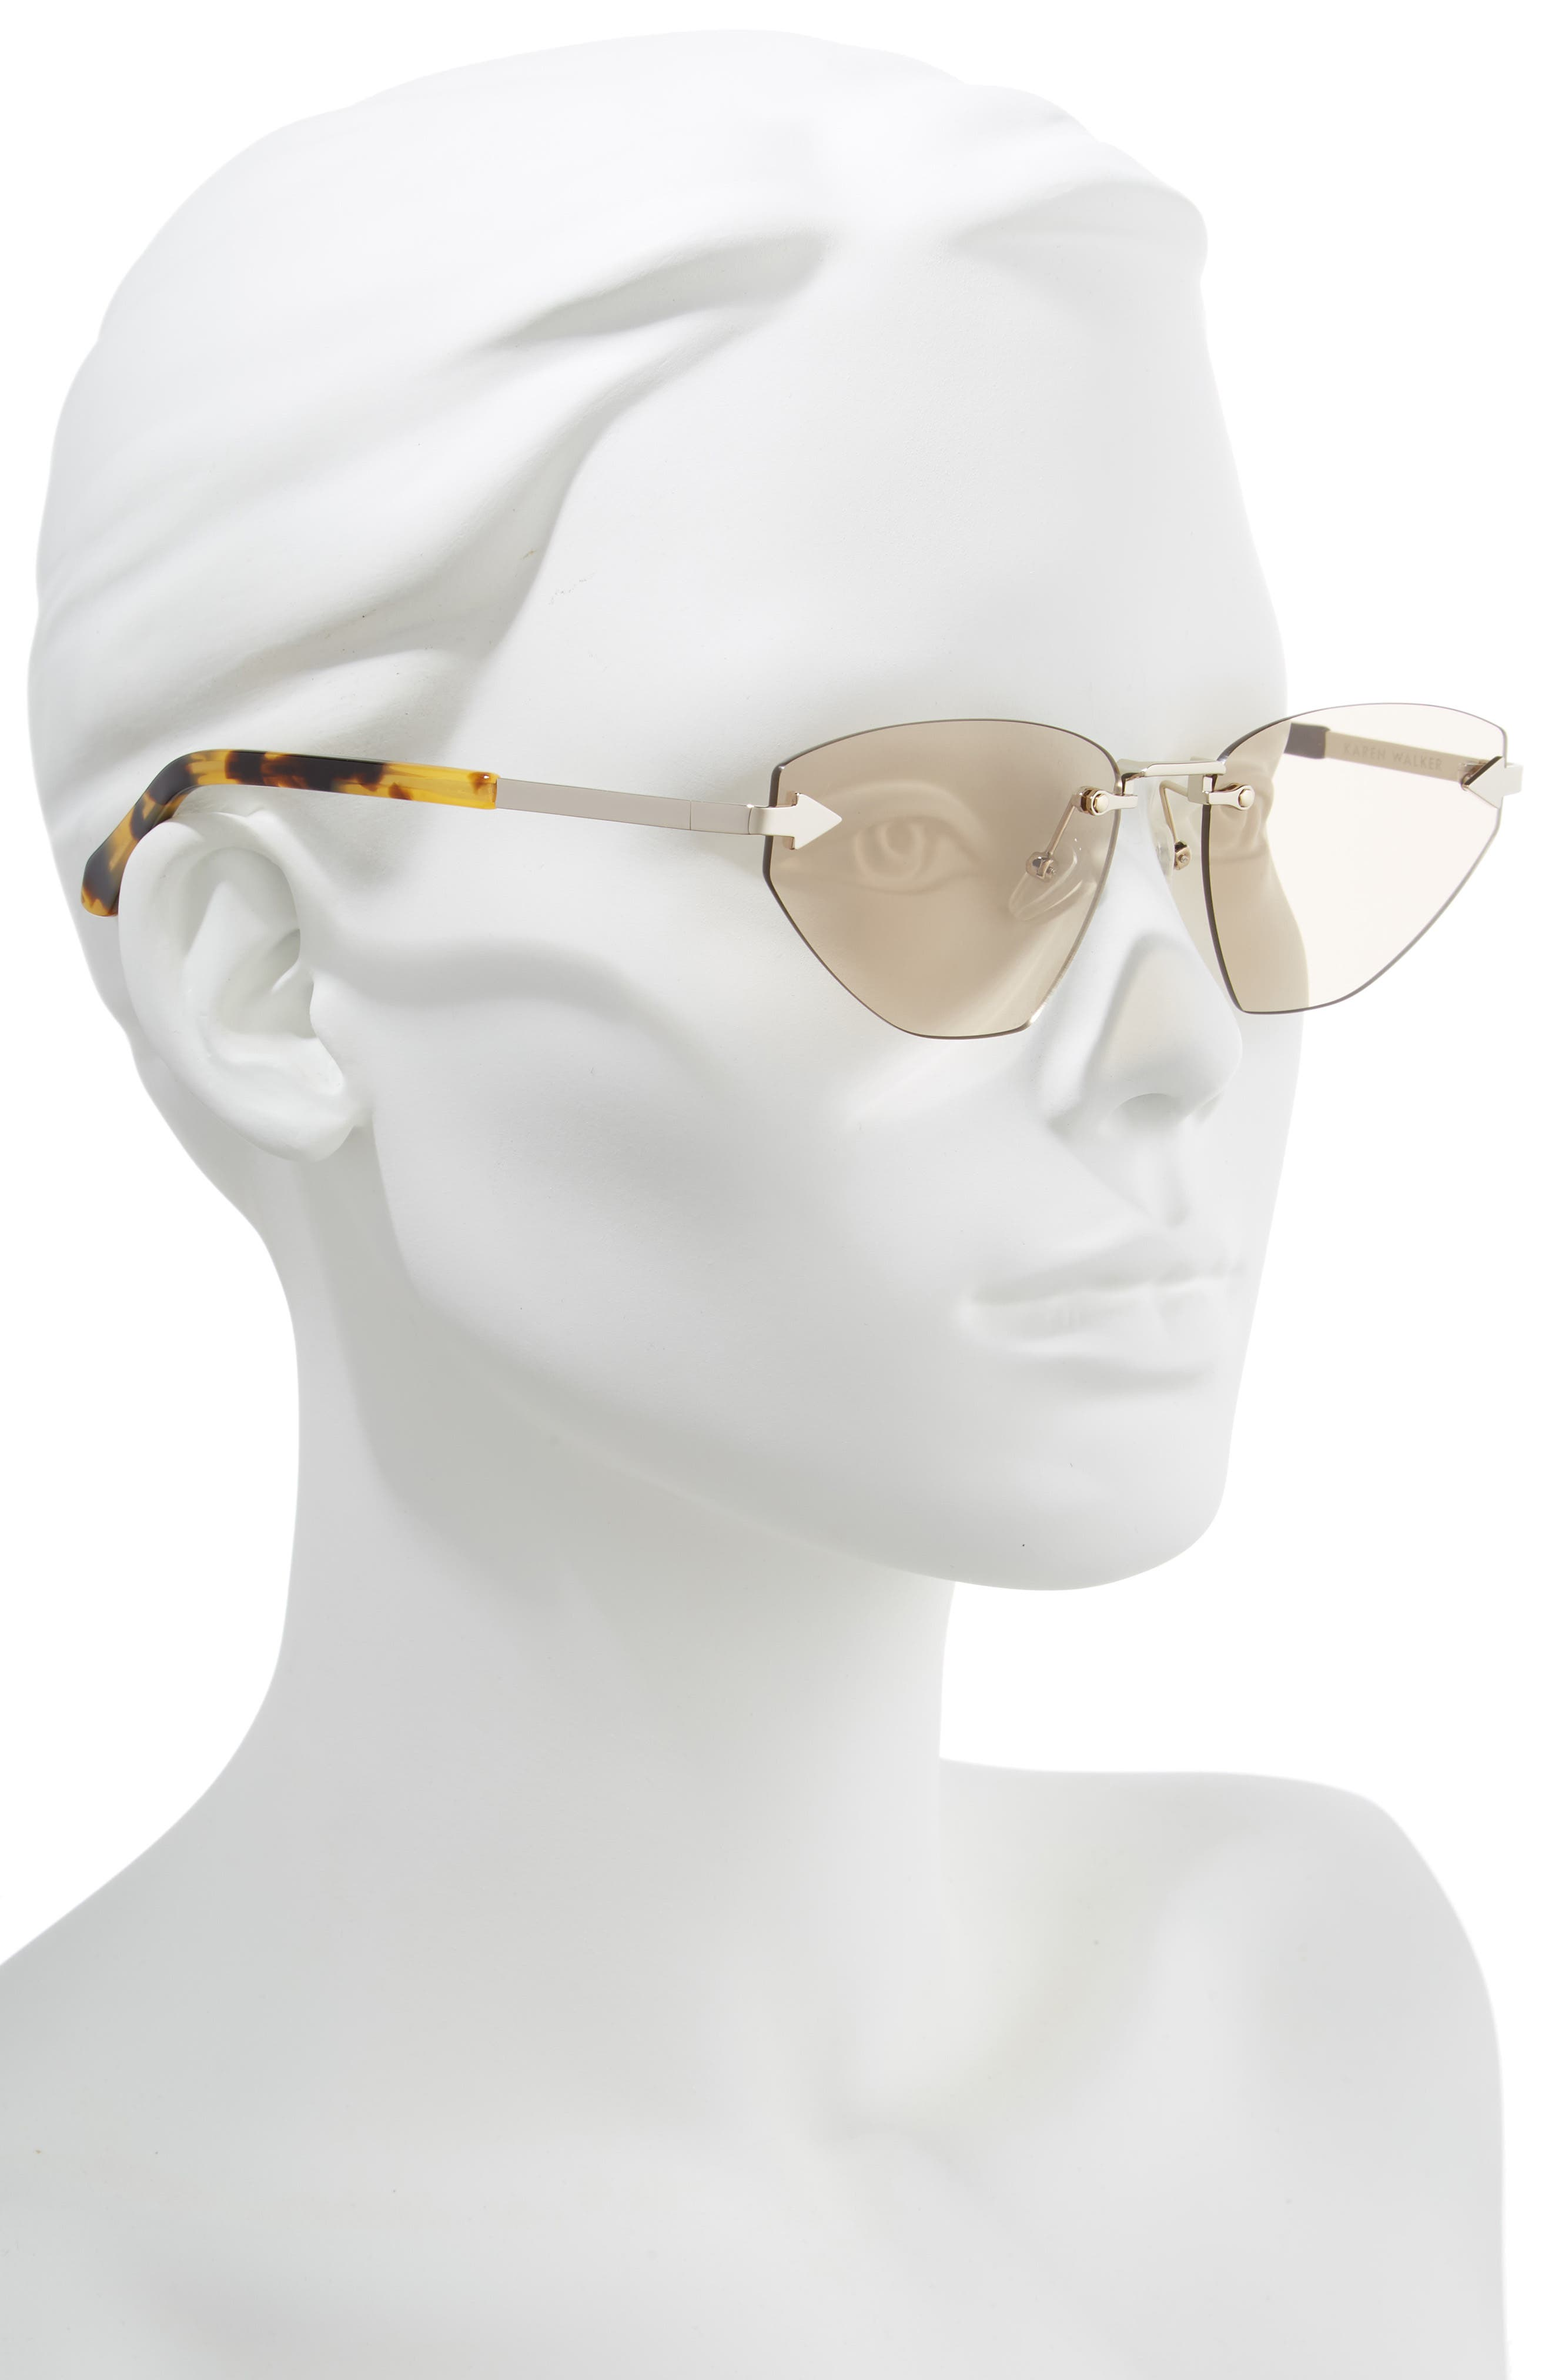 Heartache 60mm Cat Eye Sunglasses,                             Alternate thumbnail 2, color,                             GOLD/ TORTOISE